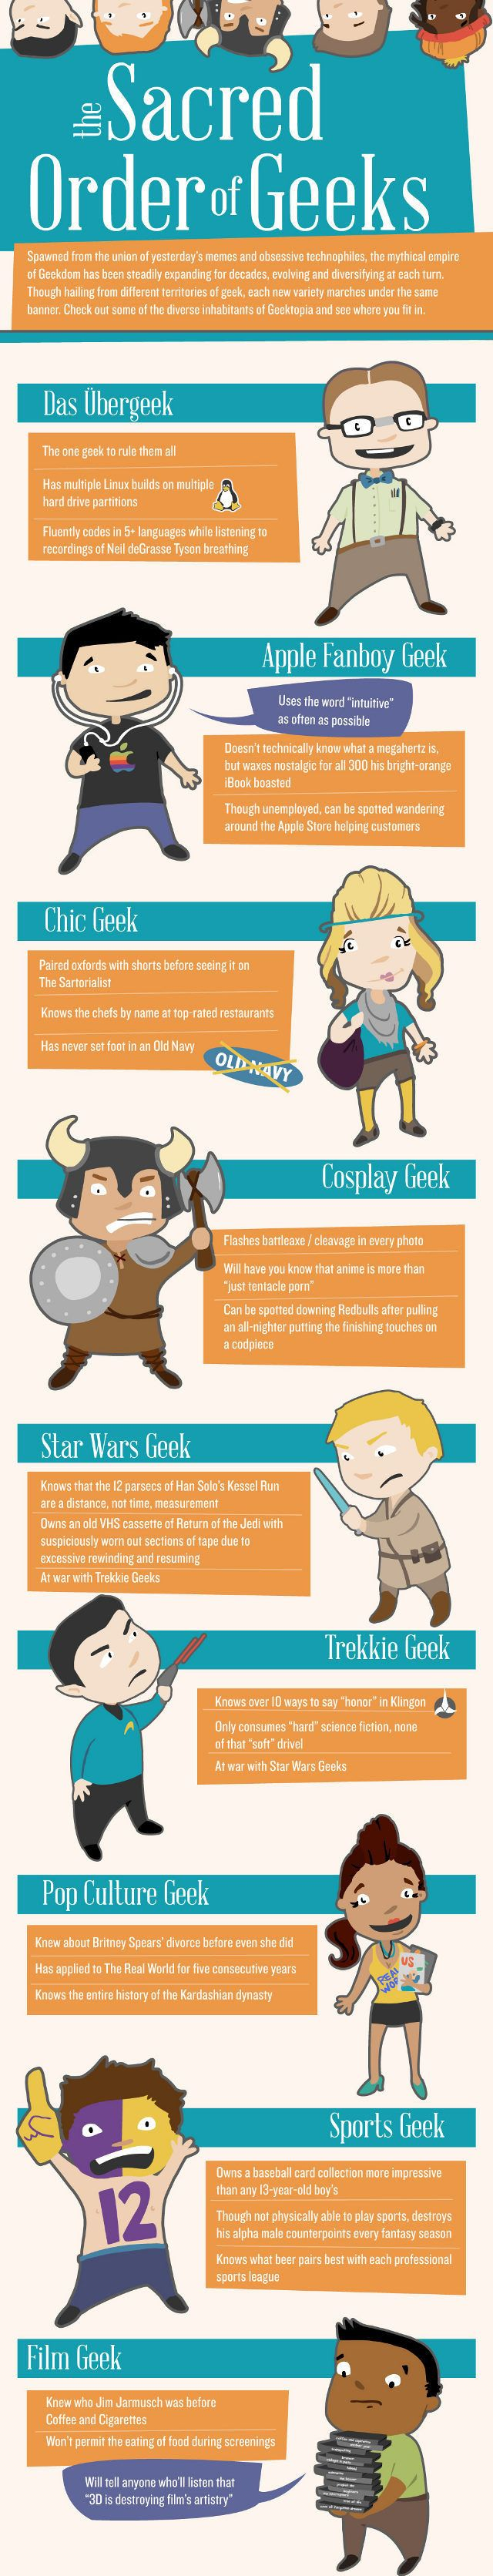 The Sacred Order of Geeks. I'm could fit an embarrassing amount of these.